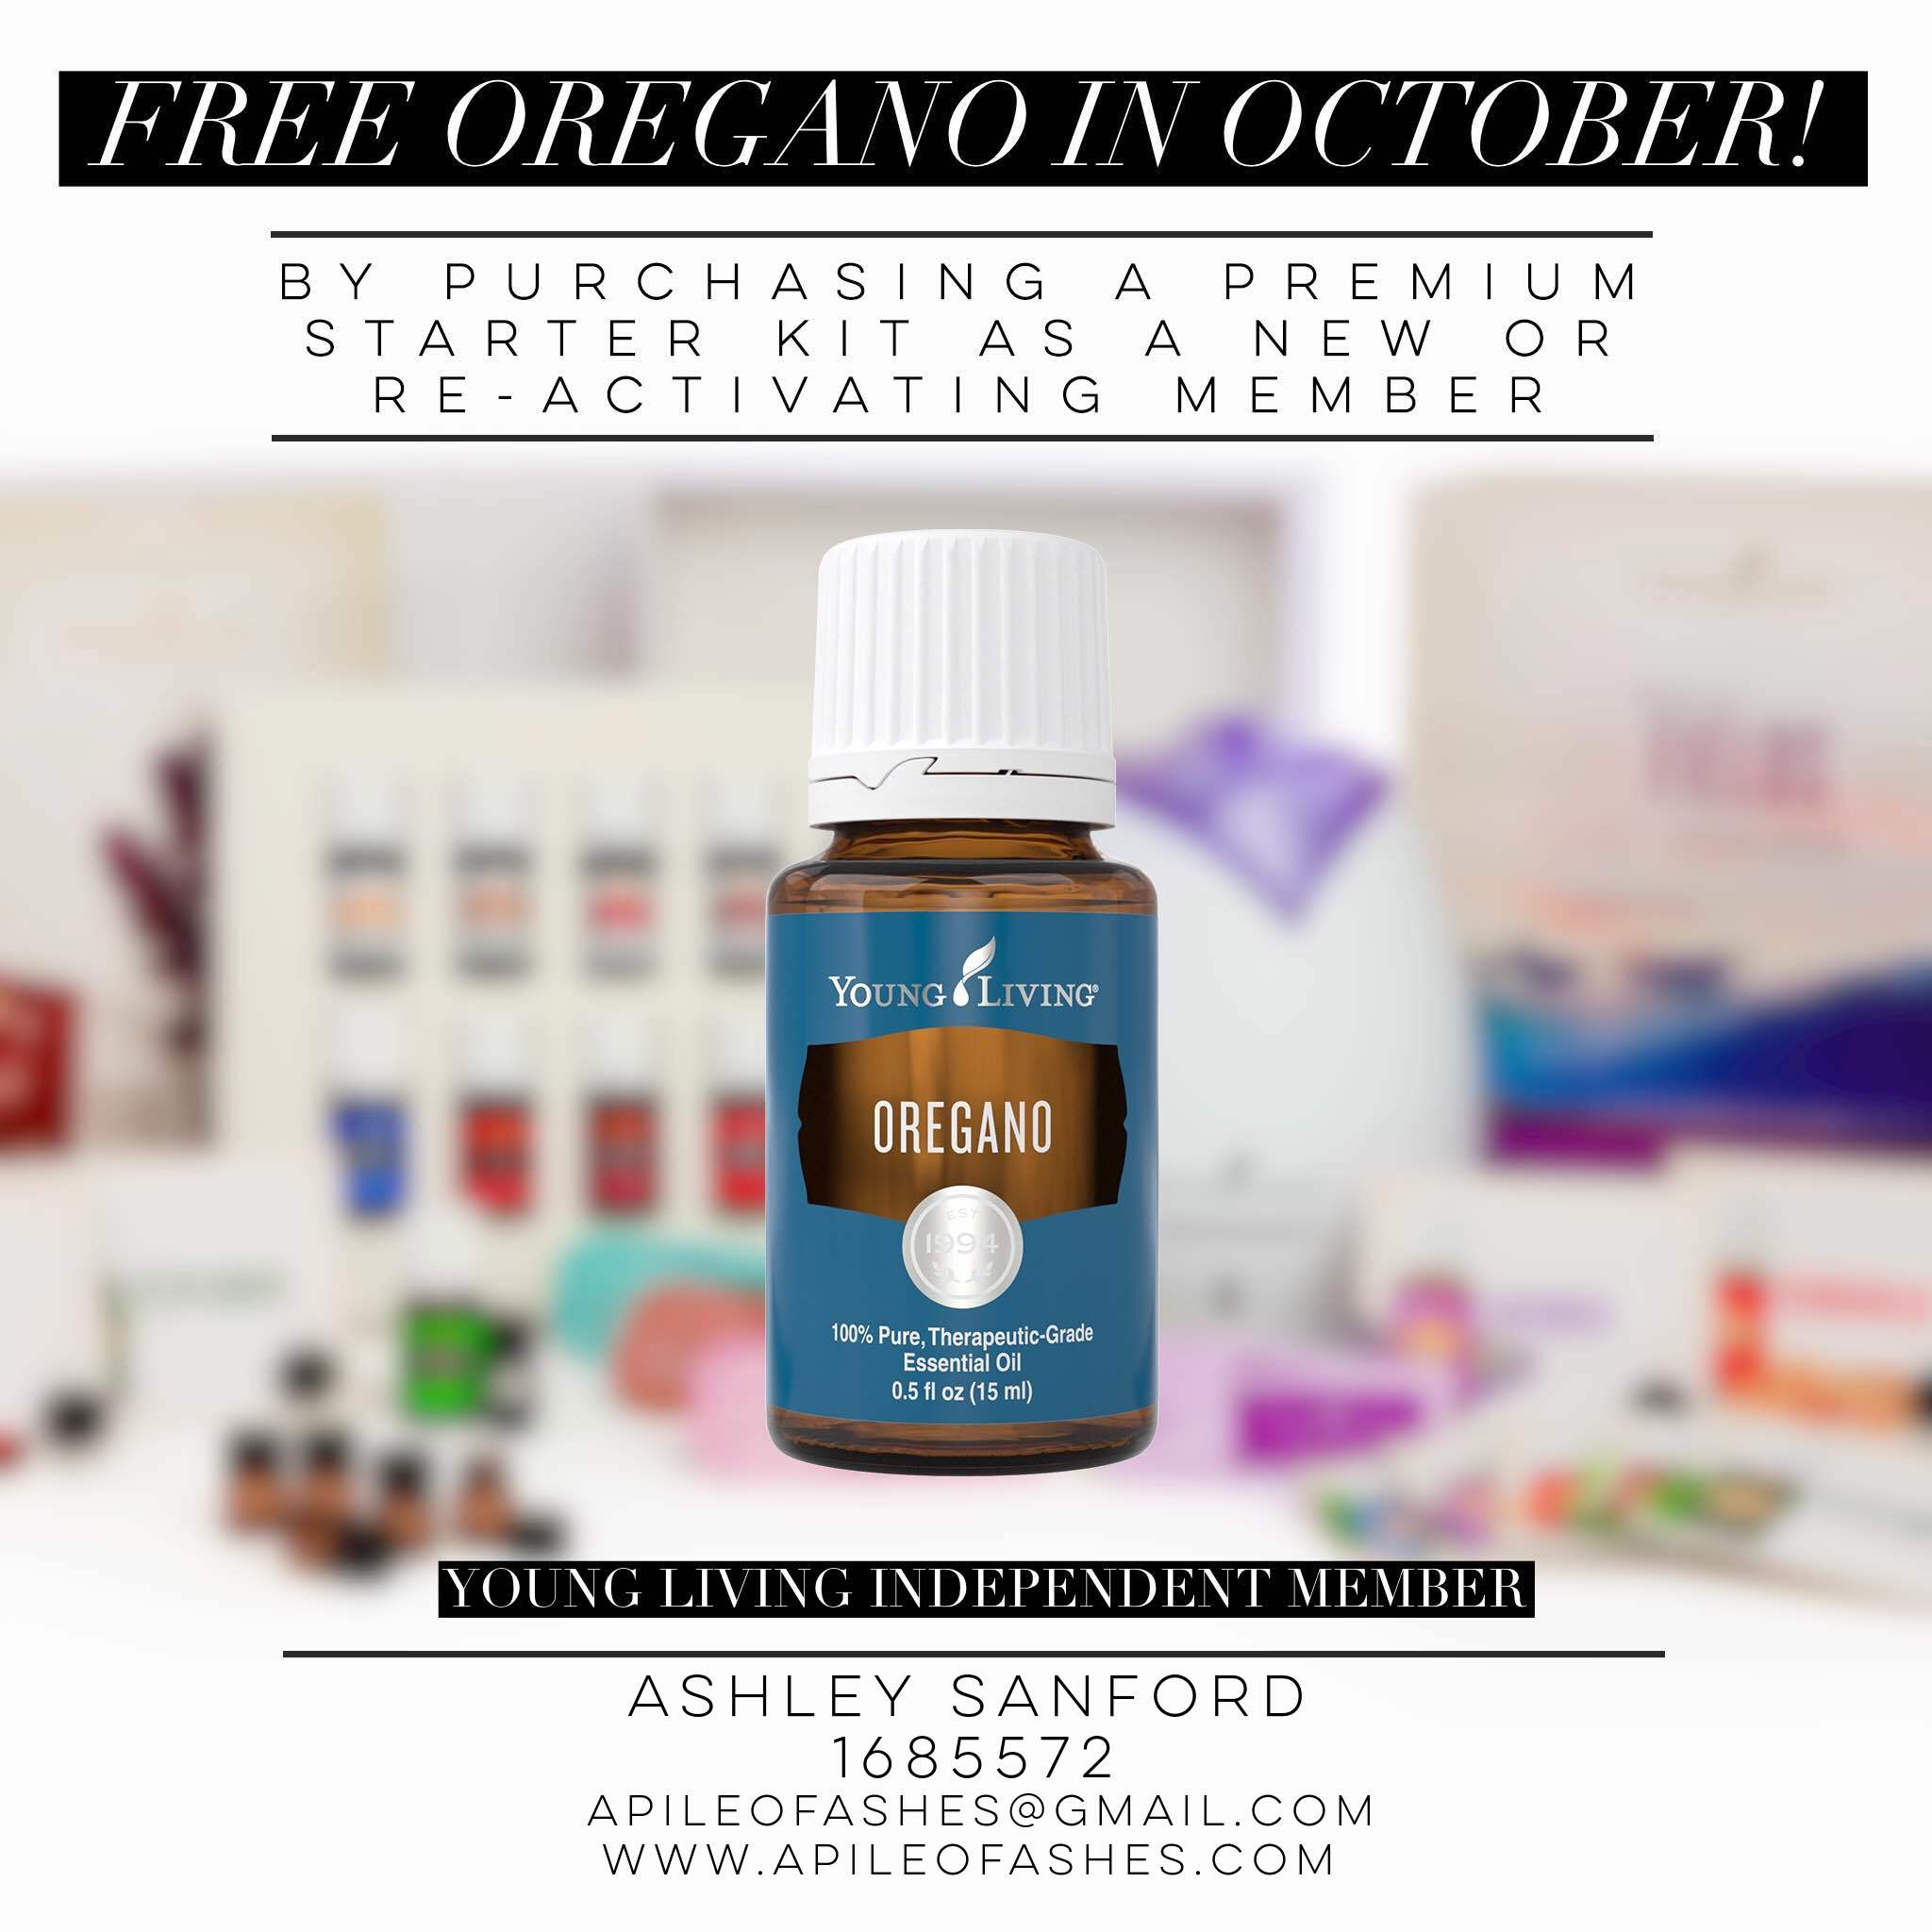 free-oregano-october